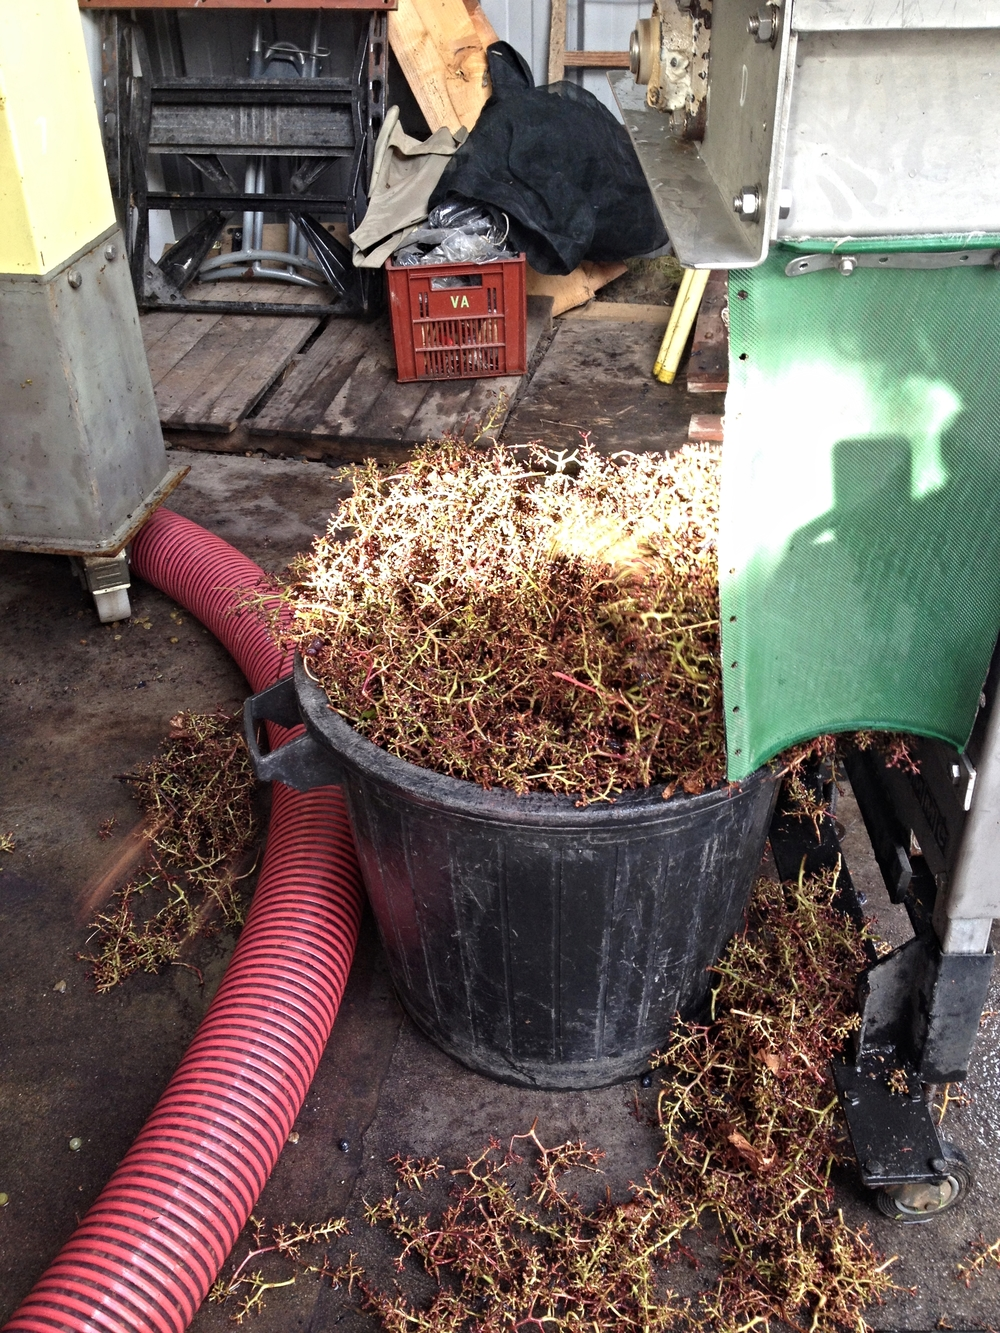 De- stemming the grapes: Grapes used in red wine must be de-stemmed before they are crushed